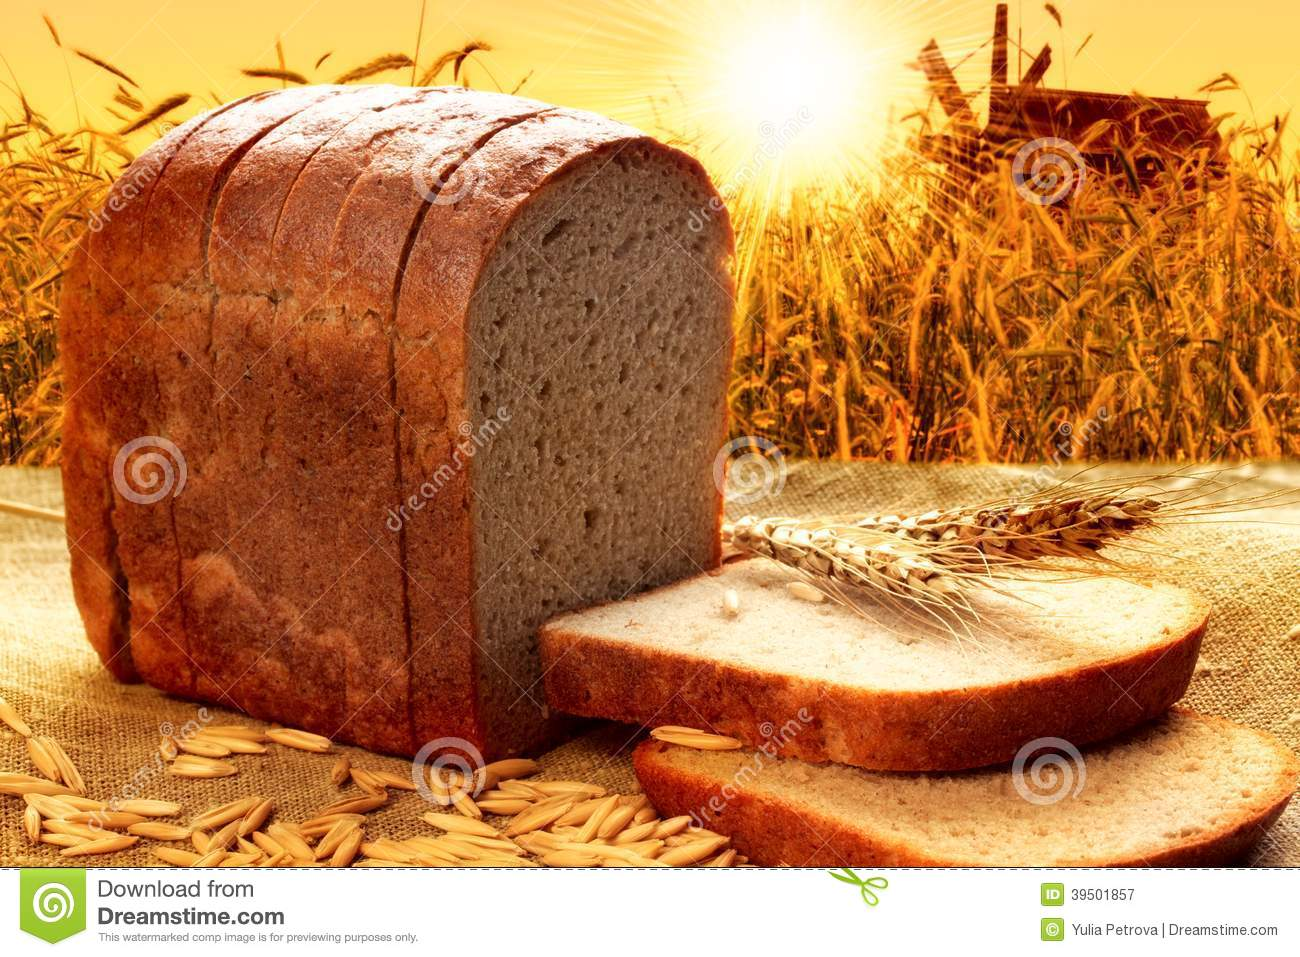 Bread with the background of the corn field